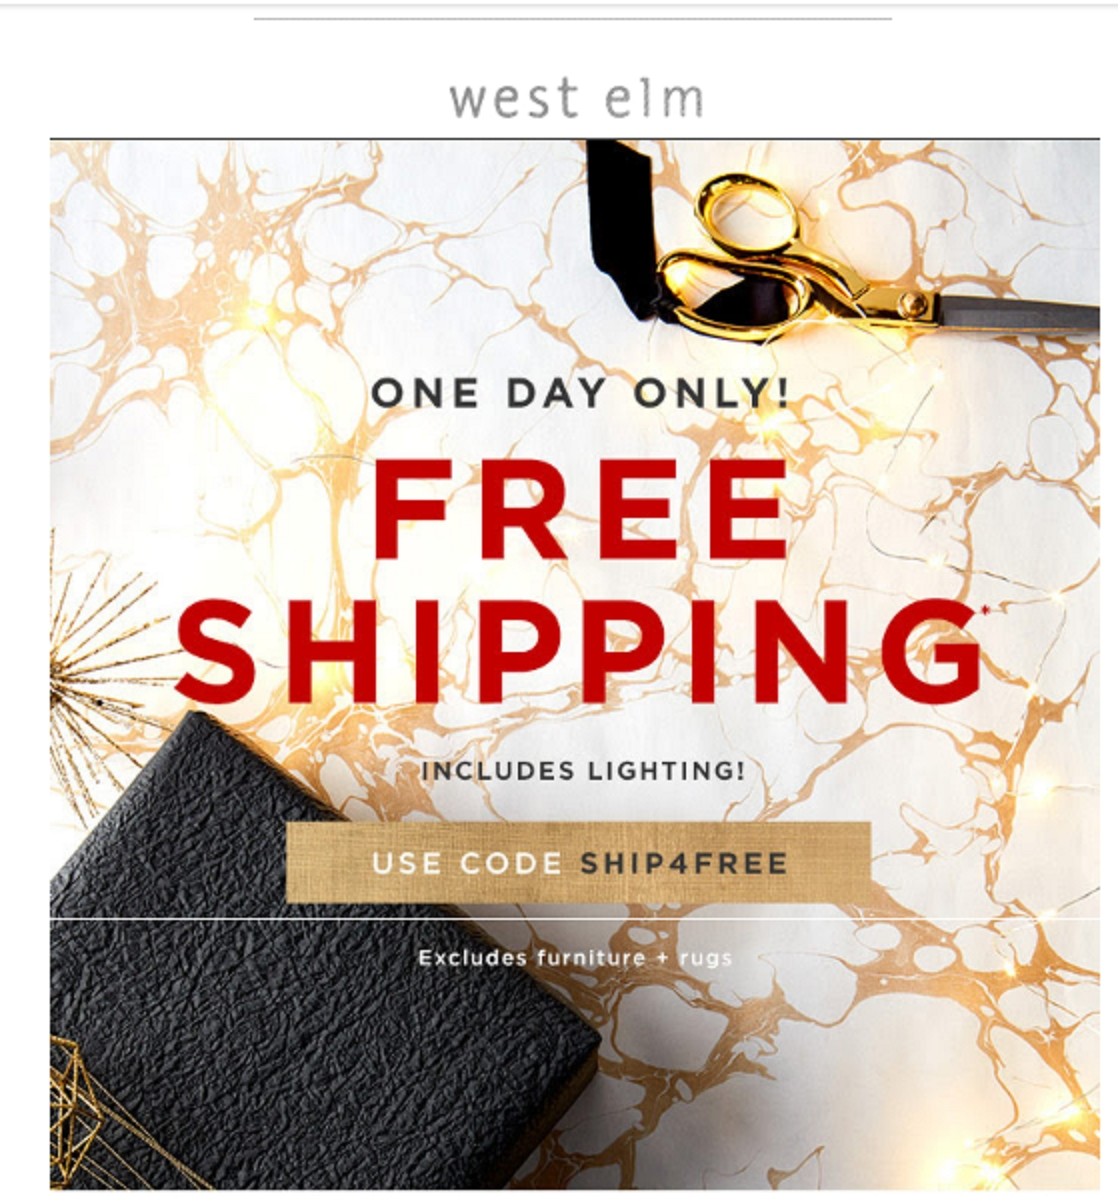 West elm free shipping coupon code